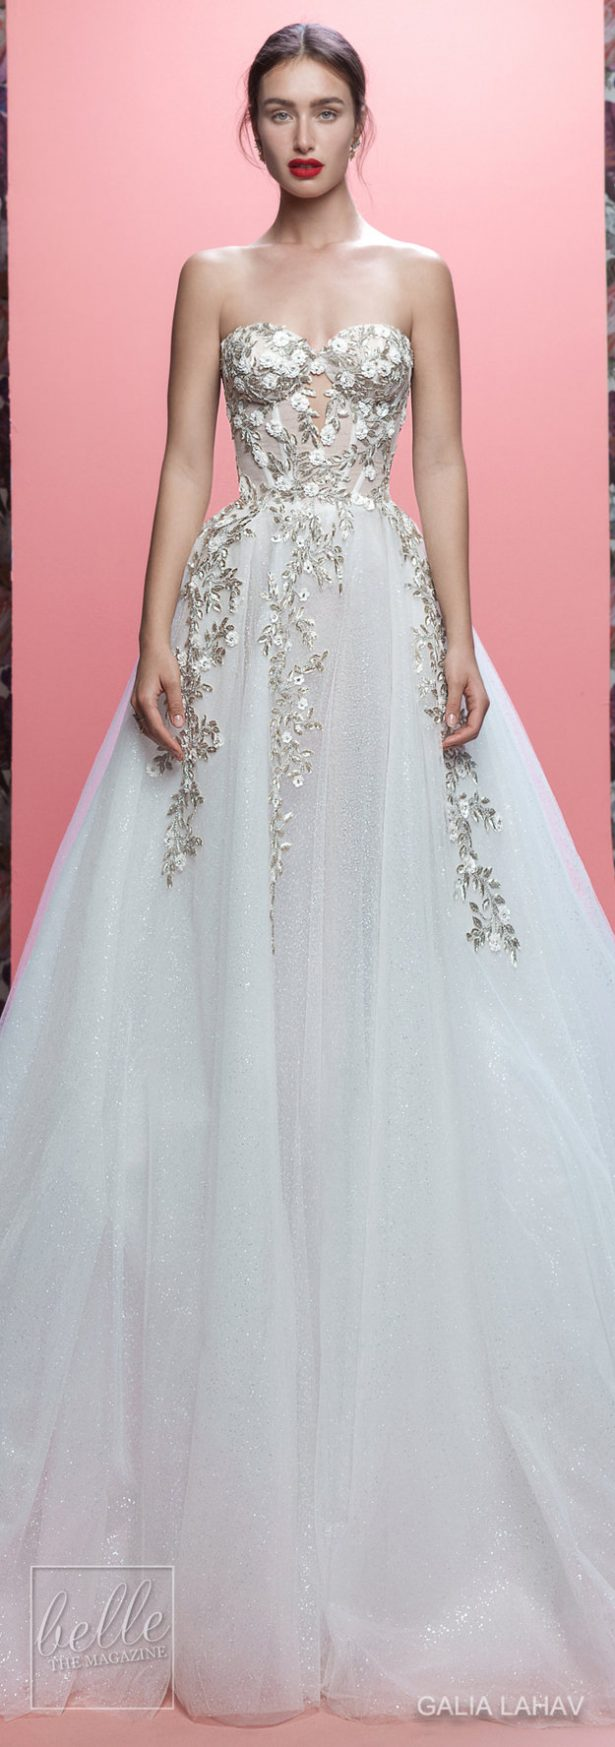 Wedding Dresses By Galia Lahav Couture Bridal Spring 2019 Collection- Queen of Hearts - Aelin